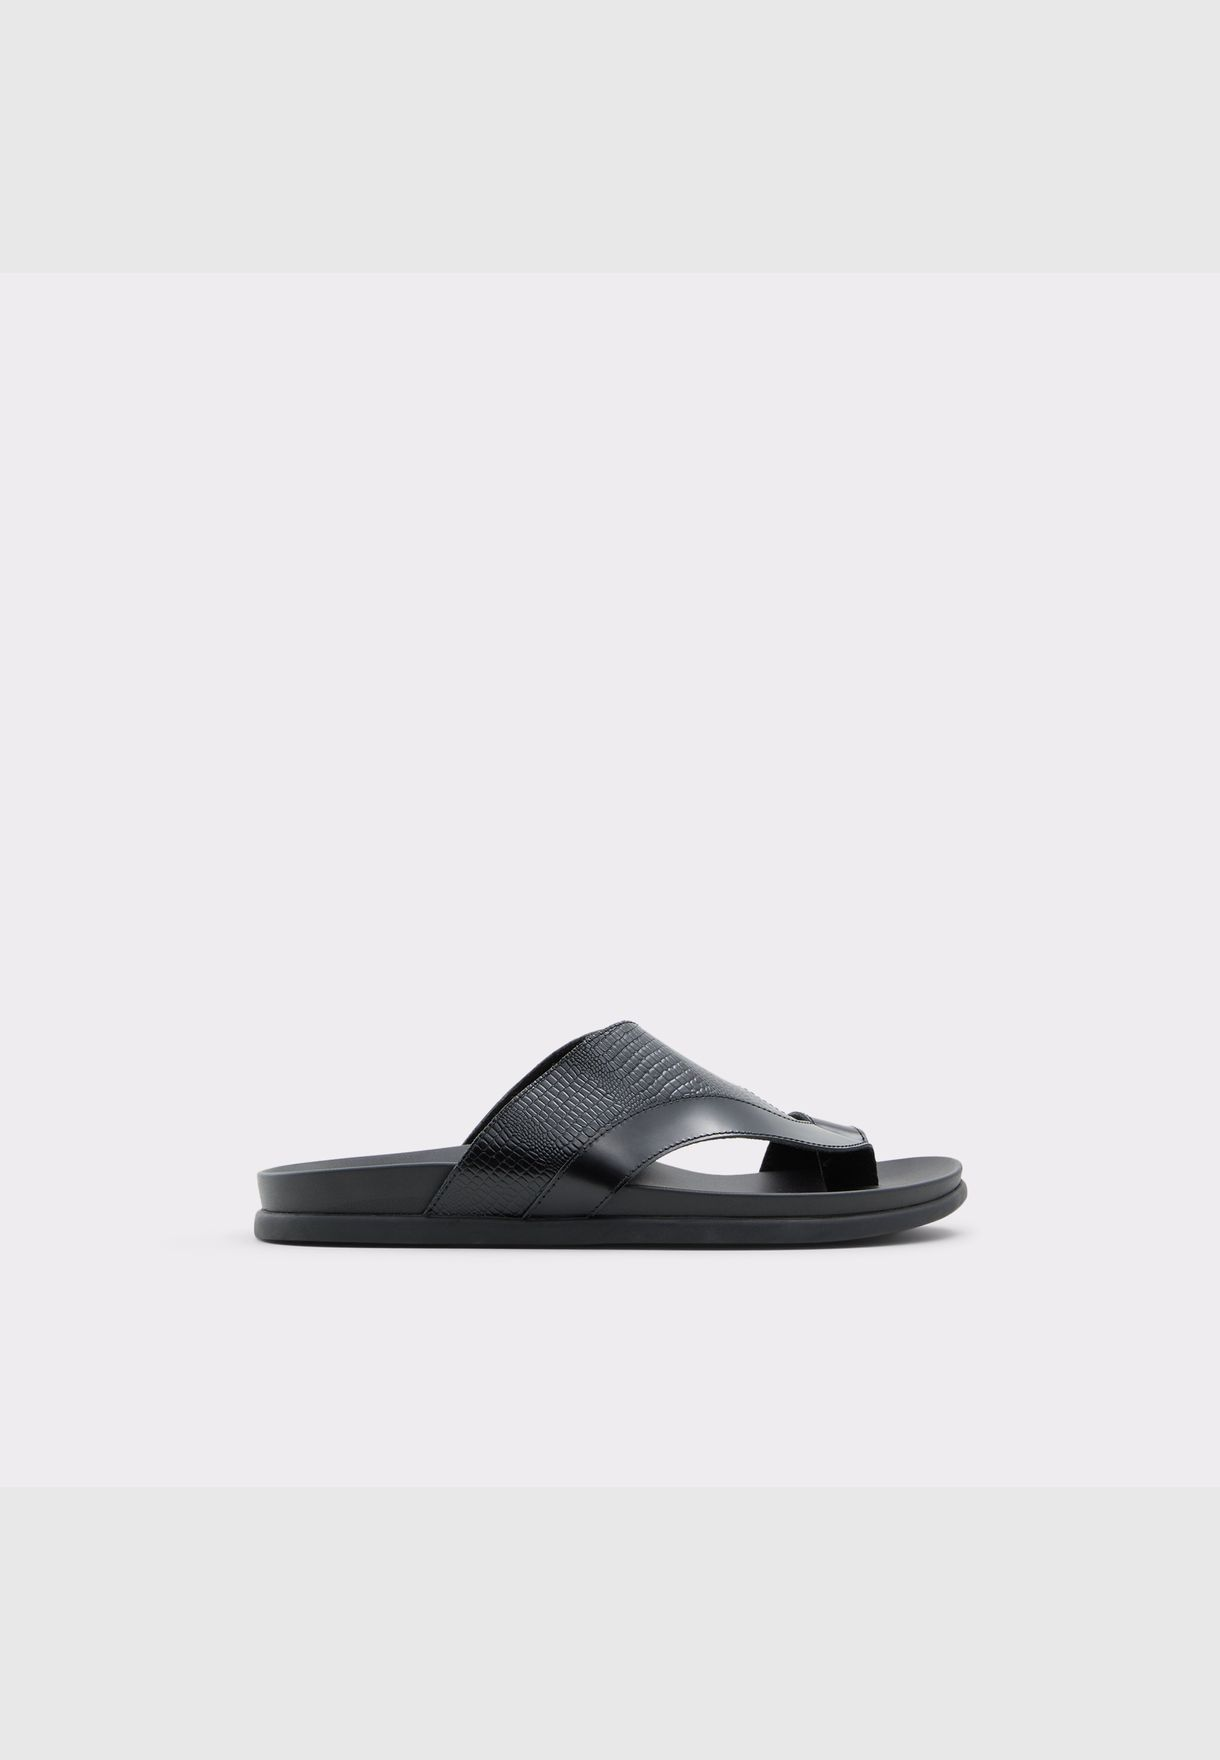 ALDO ROELANDS Men Genuine Leather Sandal Flat Heel Euro 46 Black